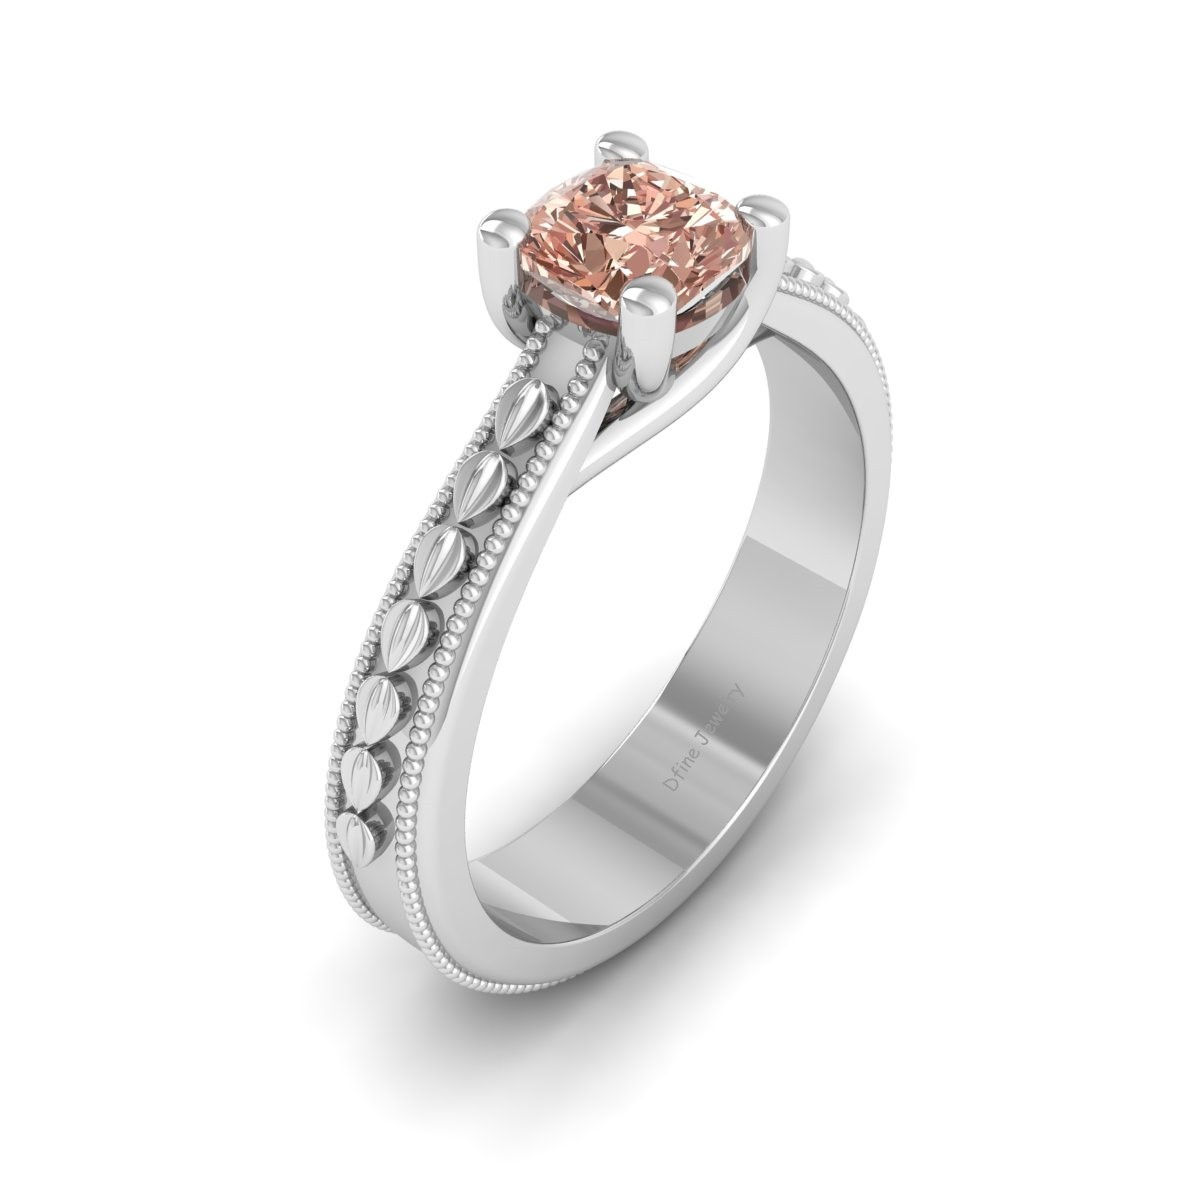 Milgrain Design Ring Solid 925 Sterling Silver Engagement Ring Anniversary Gift - $144.99